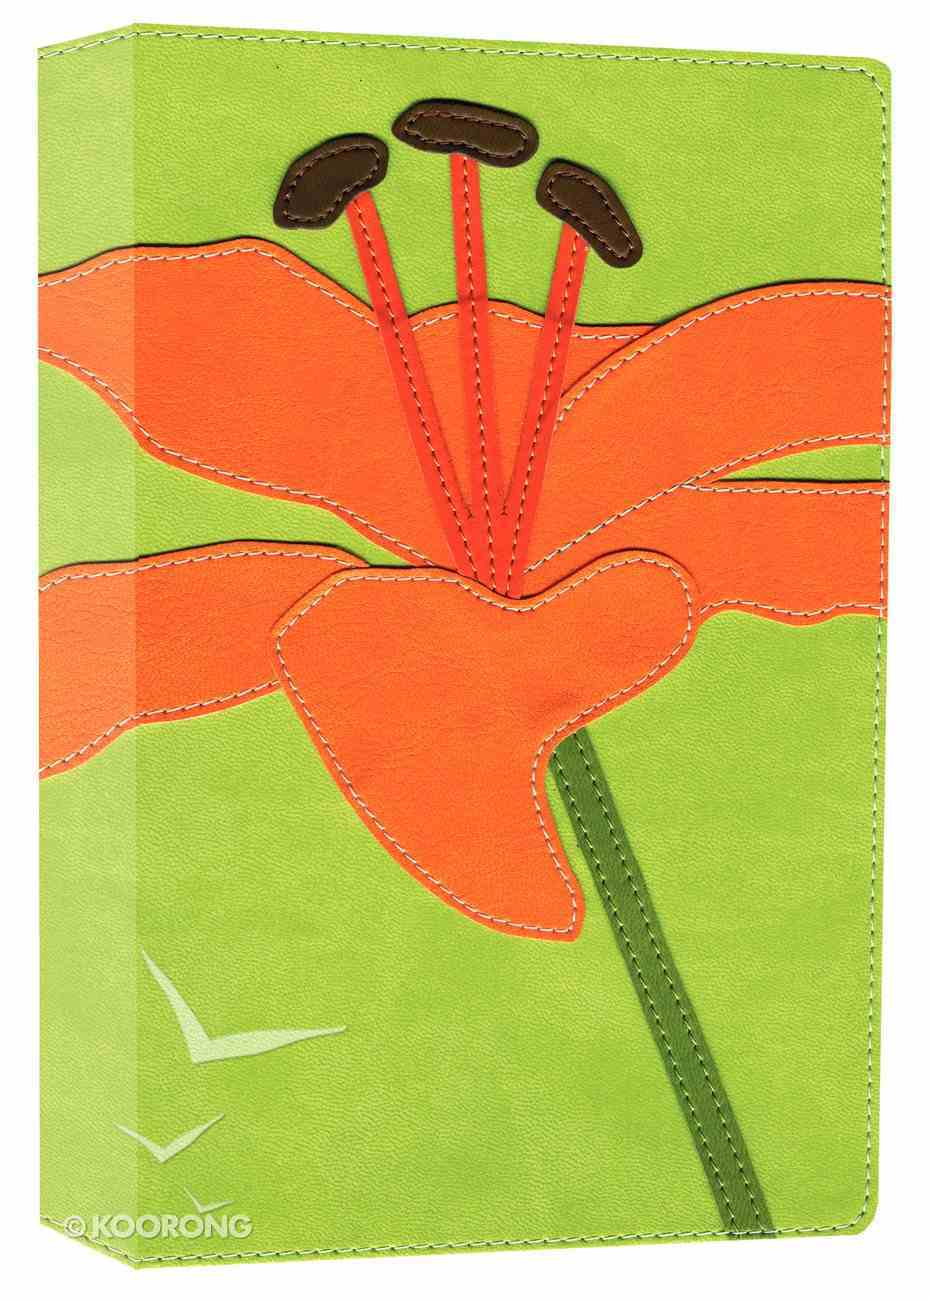 NIV Thinline Bloom Bible Green/Orange Tiger Lily (Red Letter Edition) Premium Imitation Leather